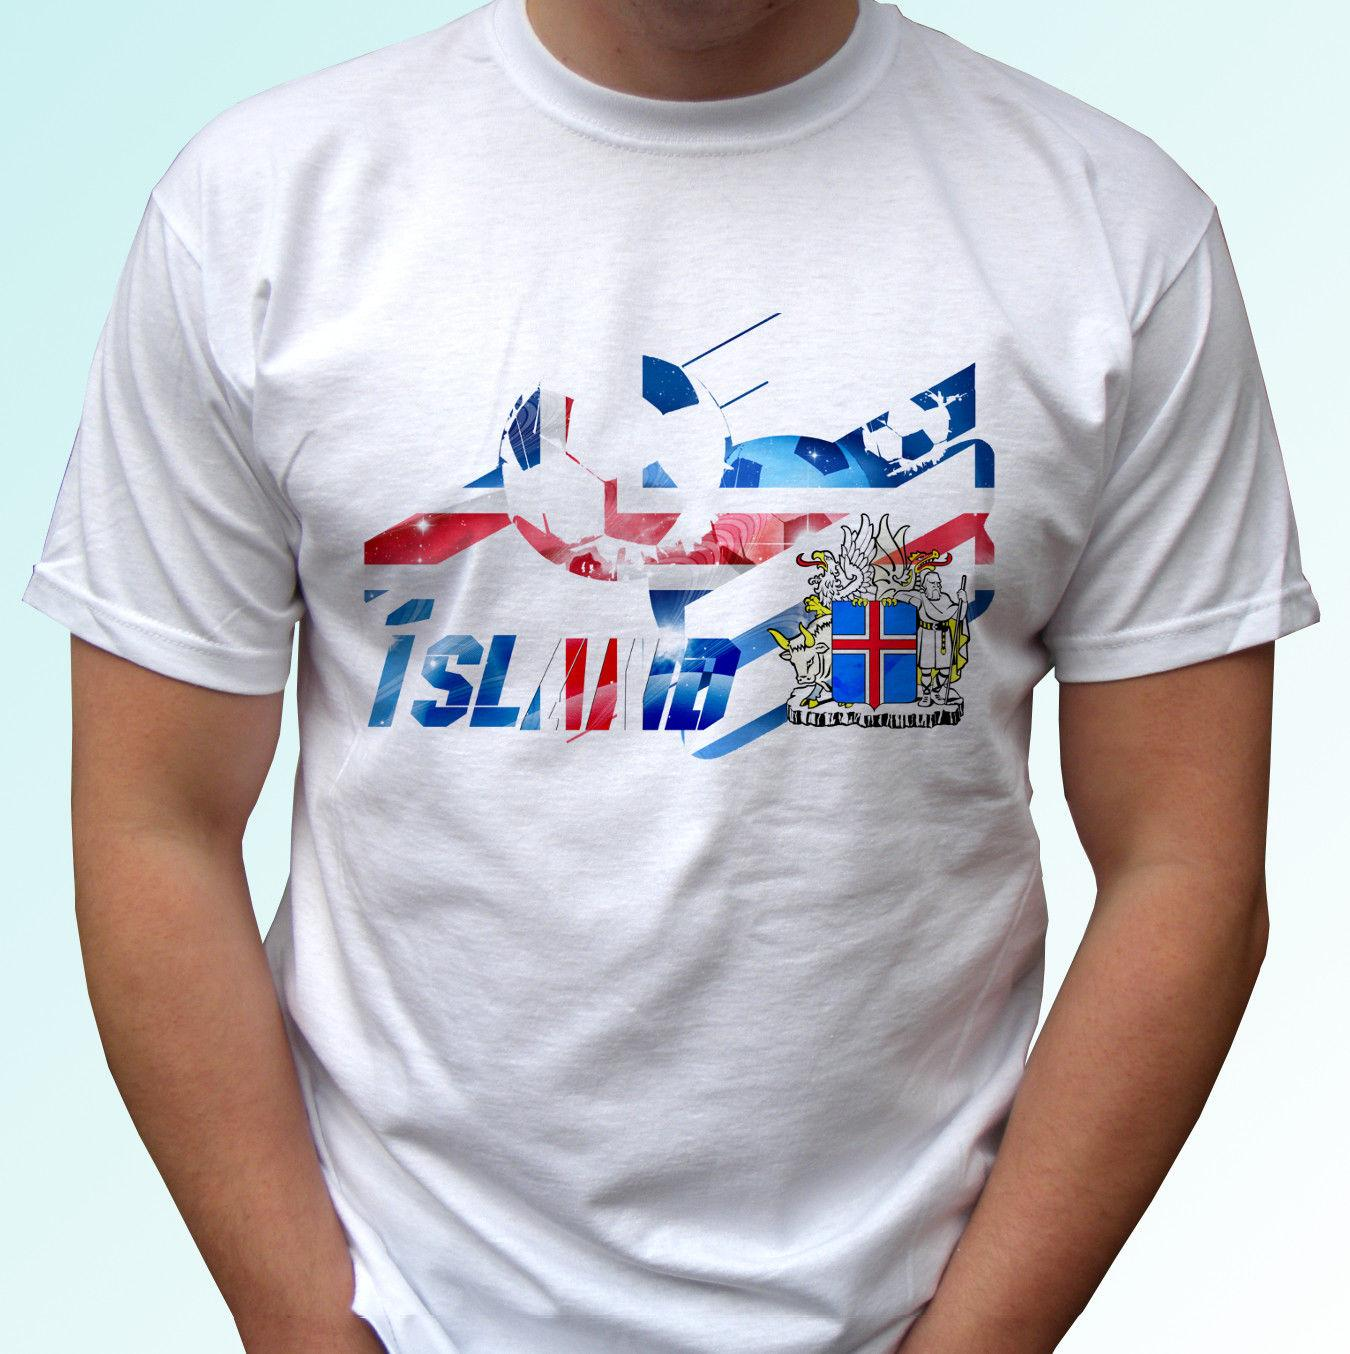 9a58941b43d Iceland Football Flag White T Shirt Island Bolur Soccer Tag World Cup Top  TeeFunny Unisex Casual Gift Collared T Shirts Funky Tshirts From  Justtheshirt, ...